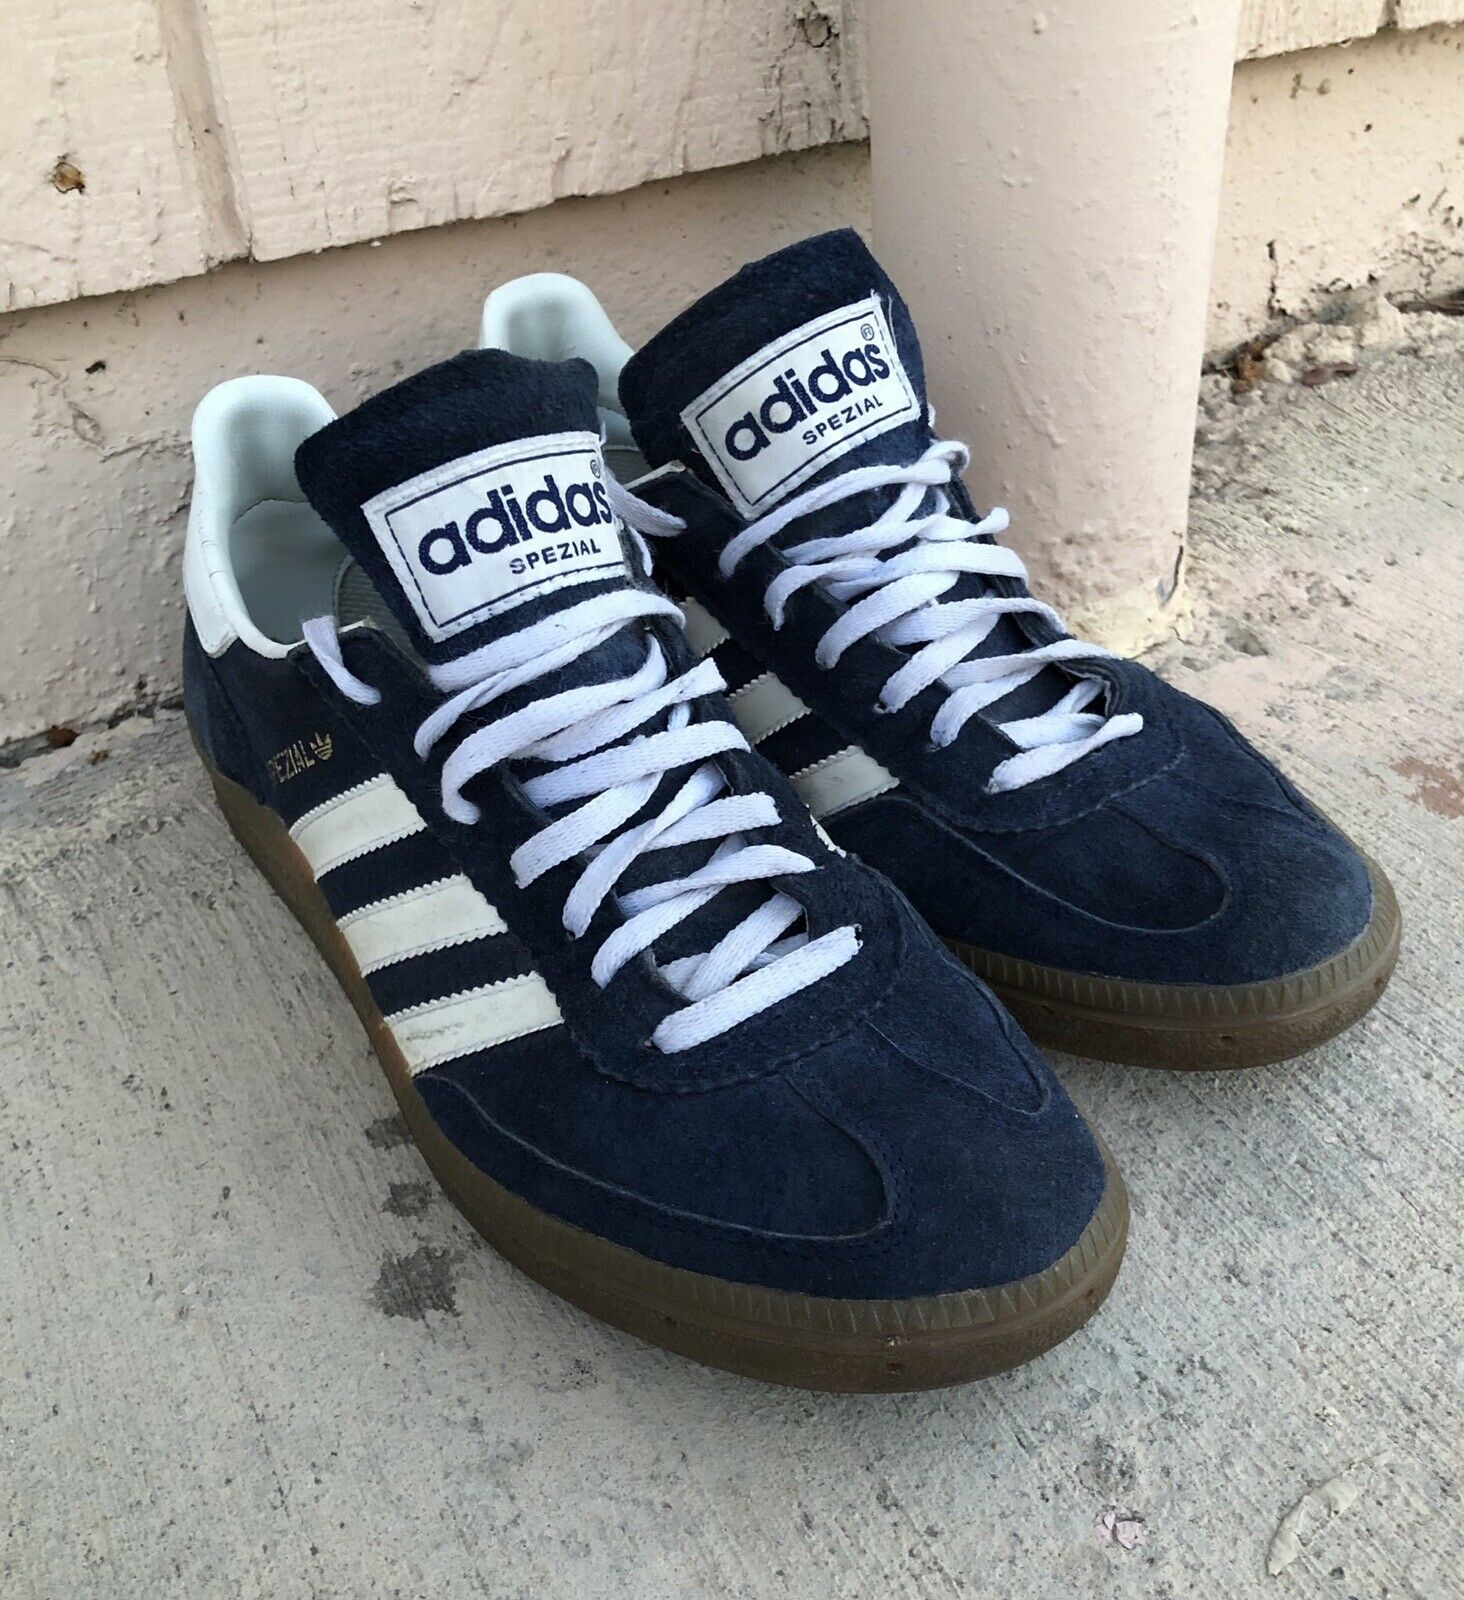 Vintage Adidas Spezial Navy bluee And White Suede Tennis shoes Men's 9.5